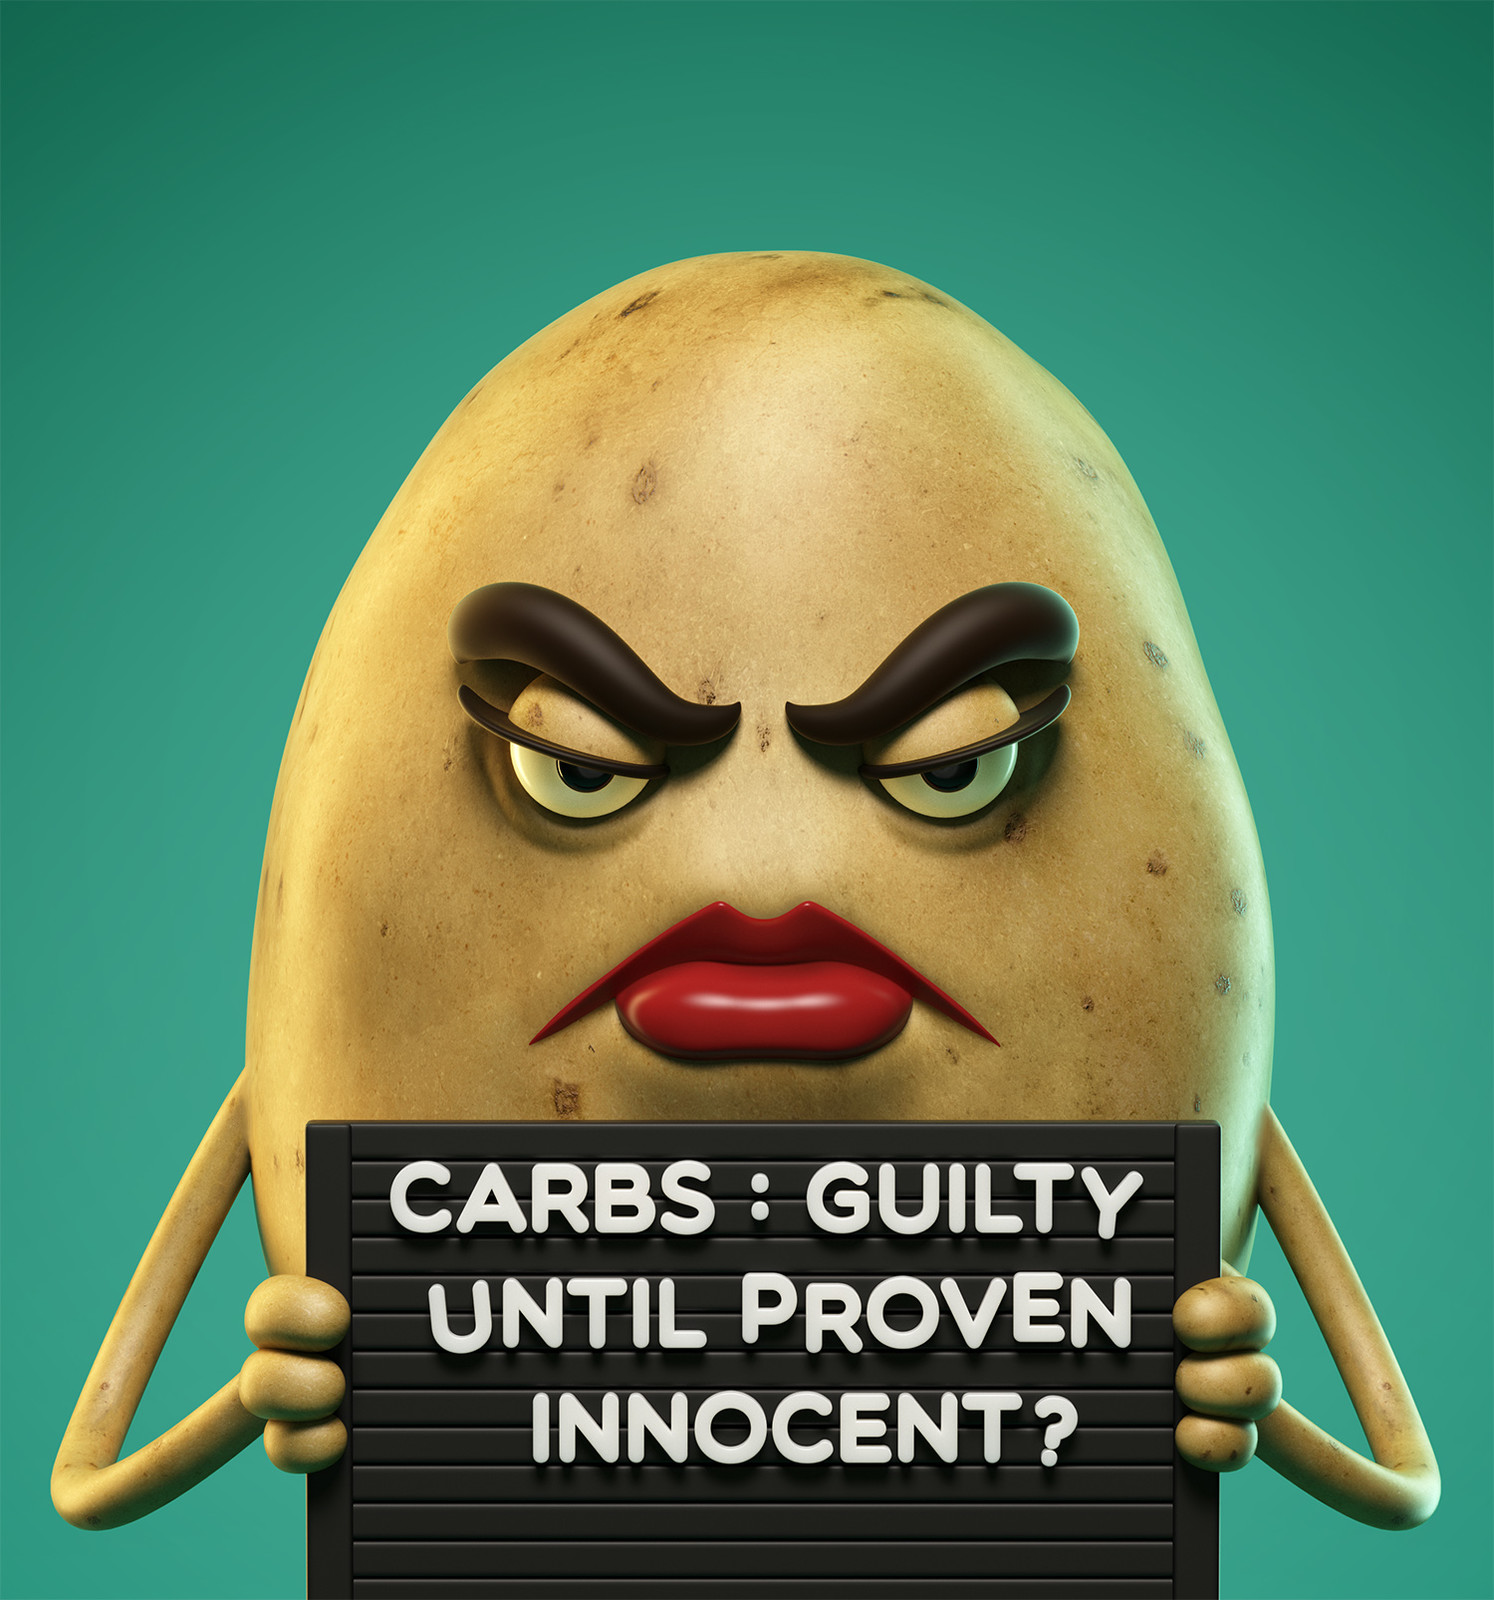 Guilty Potato - Women's Health